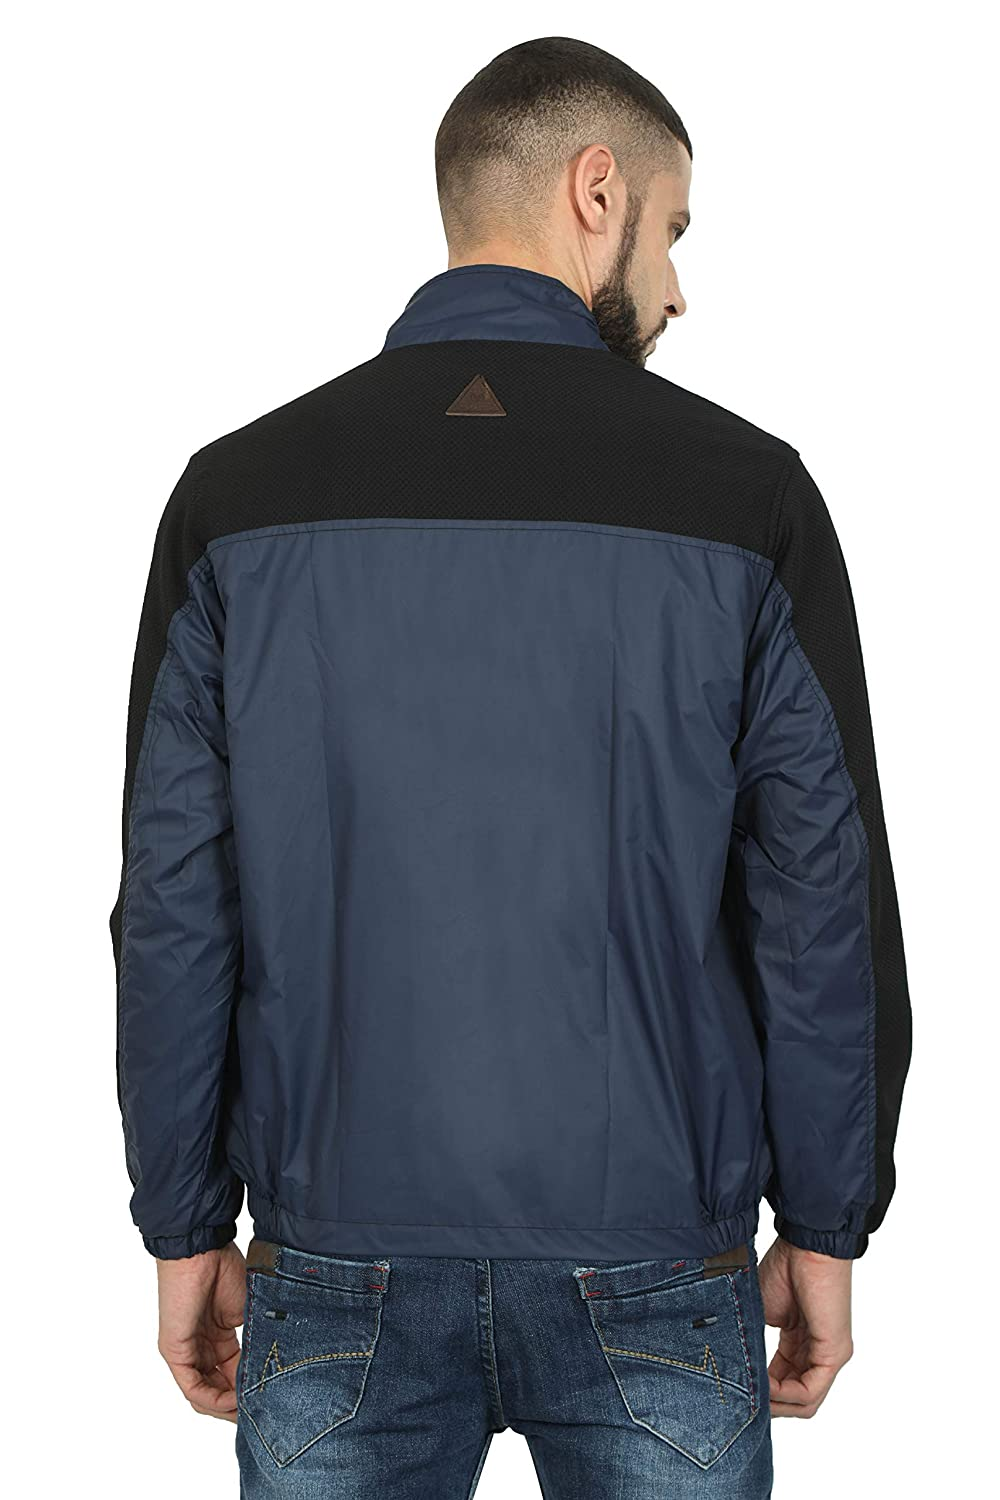 44e94259b VERSATYL Sports and Casual Track Jacket for Men and Women: Amazon.in:  Clothing & Accessories